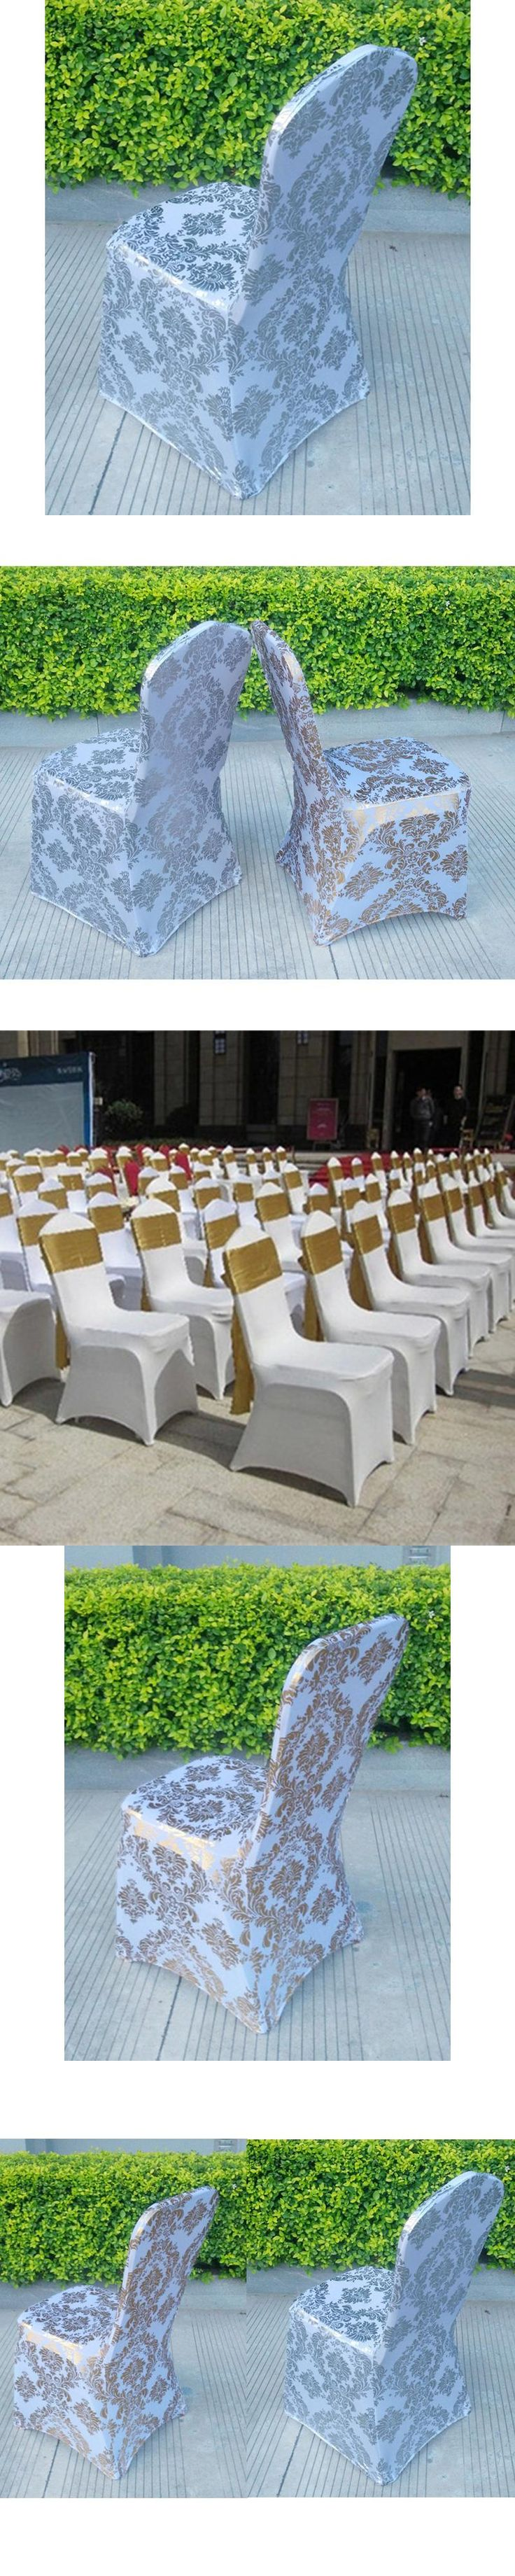 The 25 best Gold chair covers ideas on Pinterest